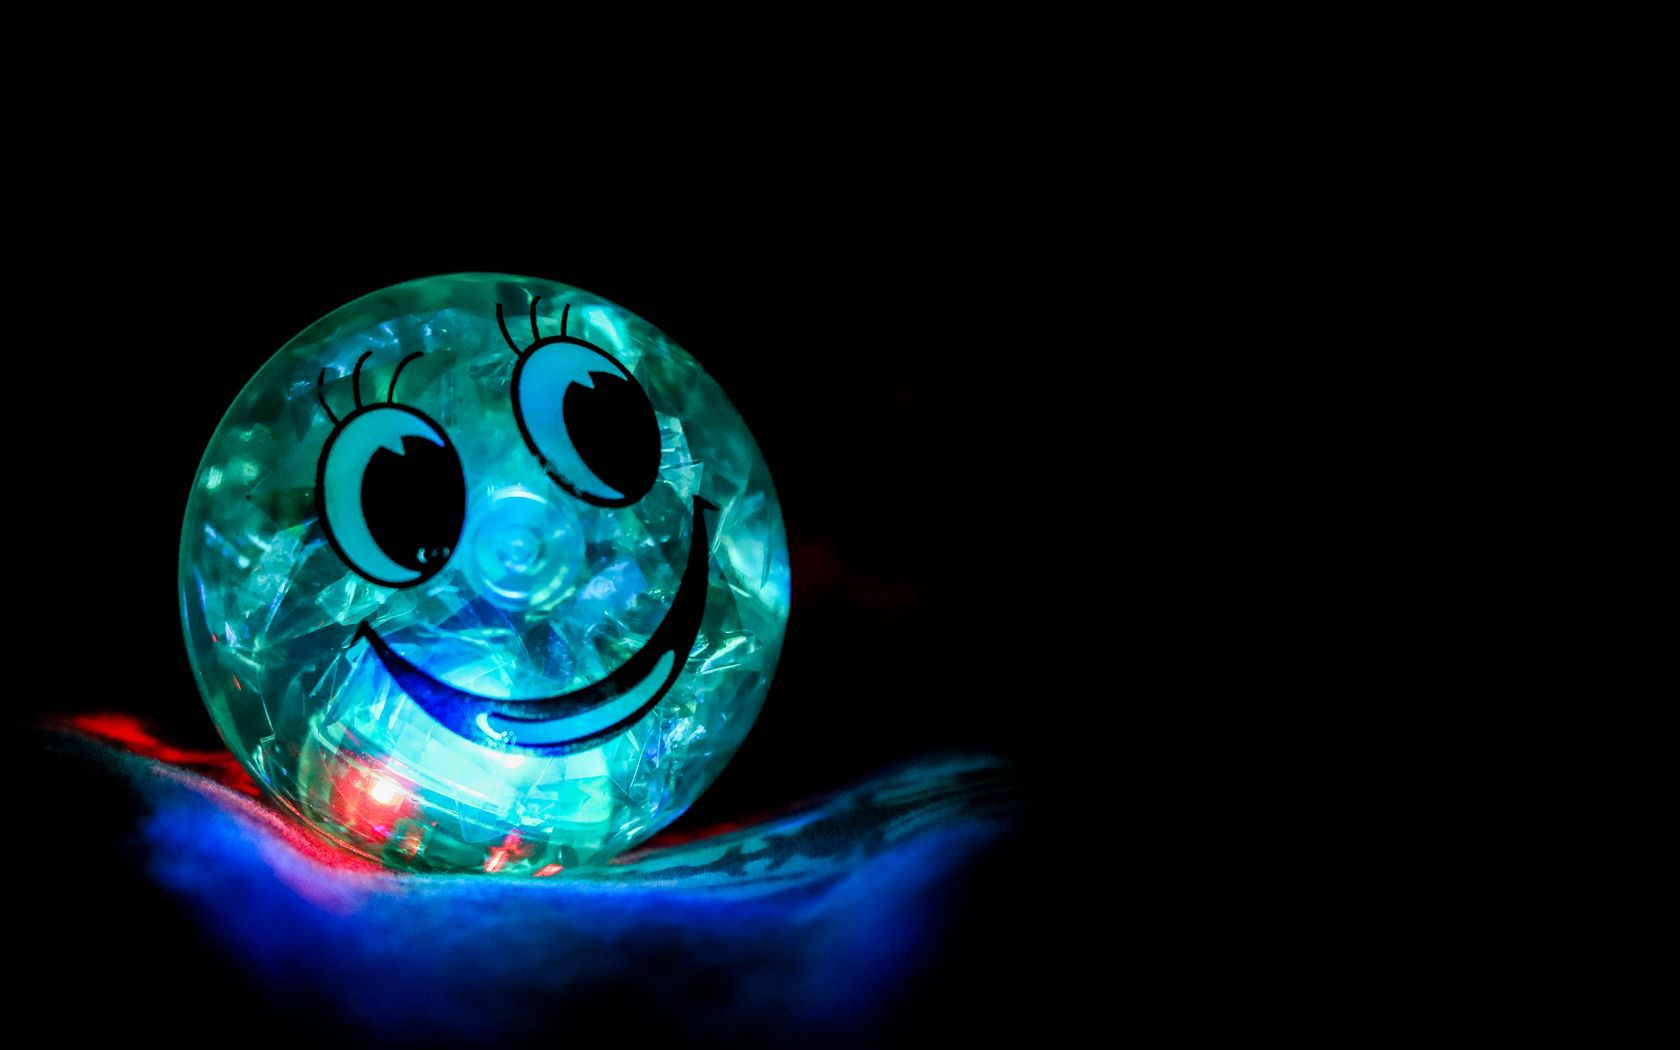 1680x1050 Wallpaper smile, happiness, ball, backlight